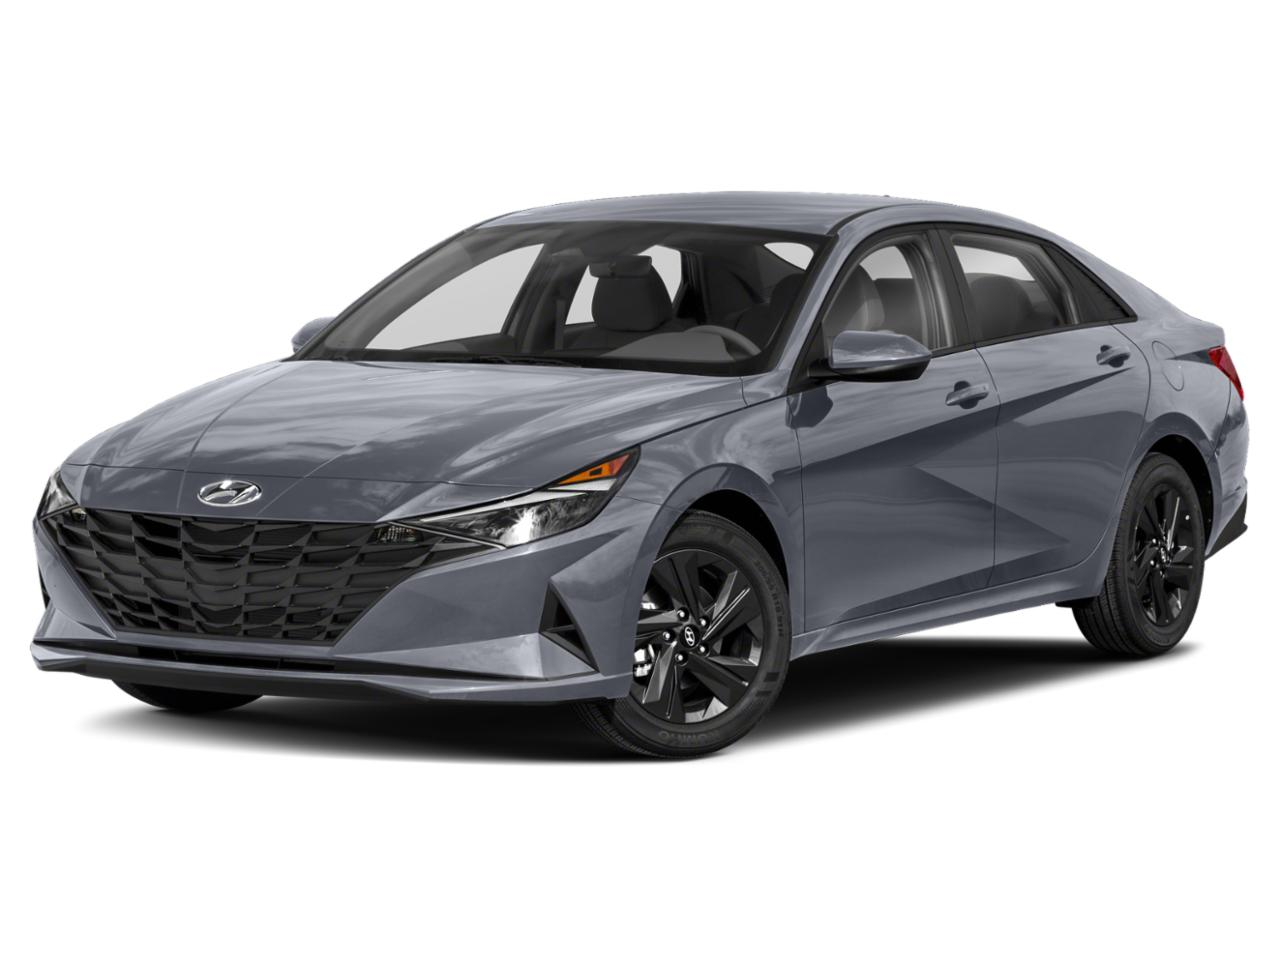 2021 Hyundai Elantra Vehicle Photo in Nashua, NH 03060